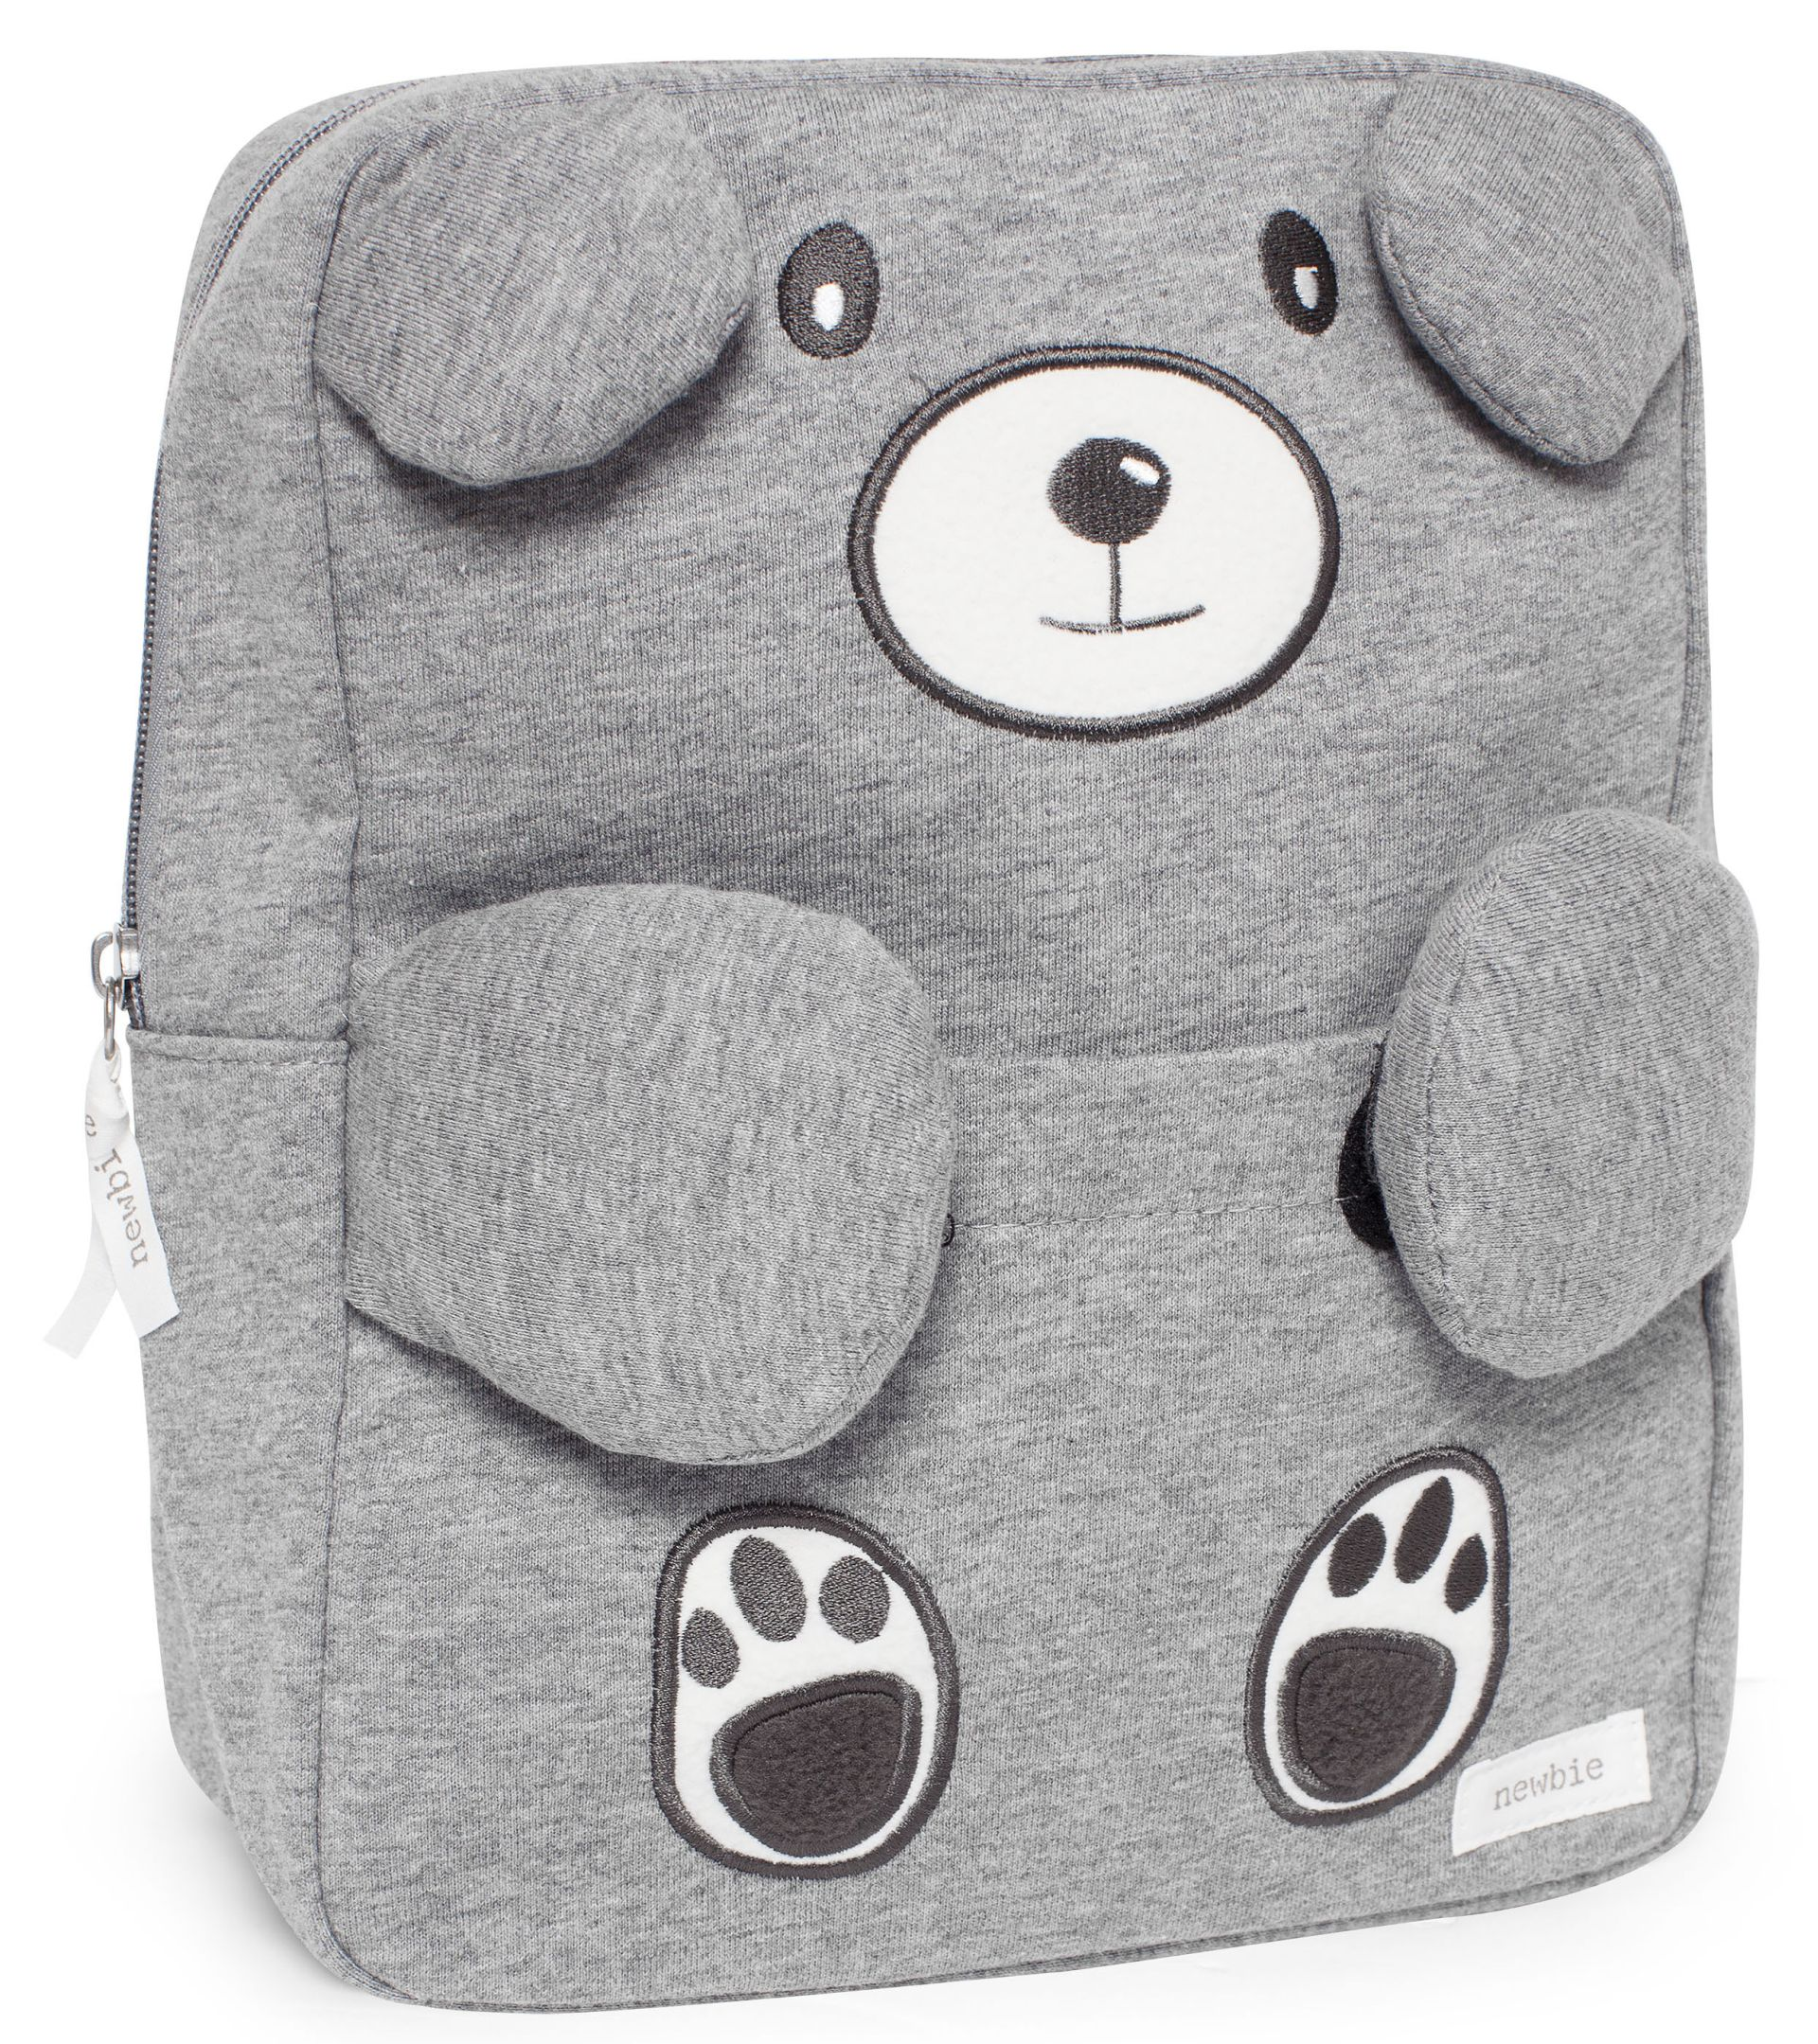 A grey bear backpack by Newbie